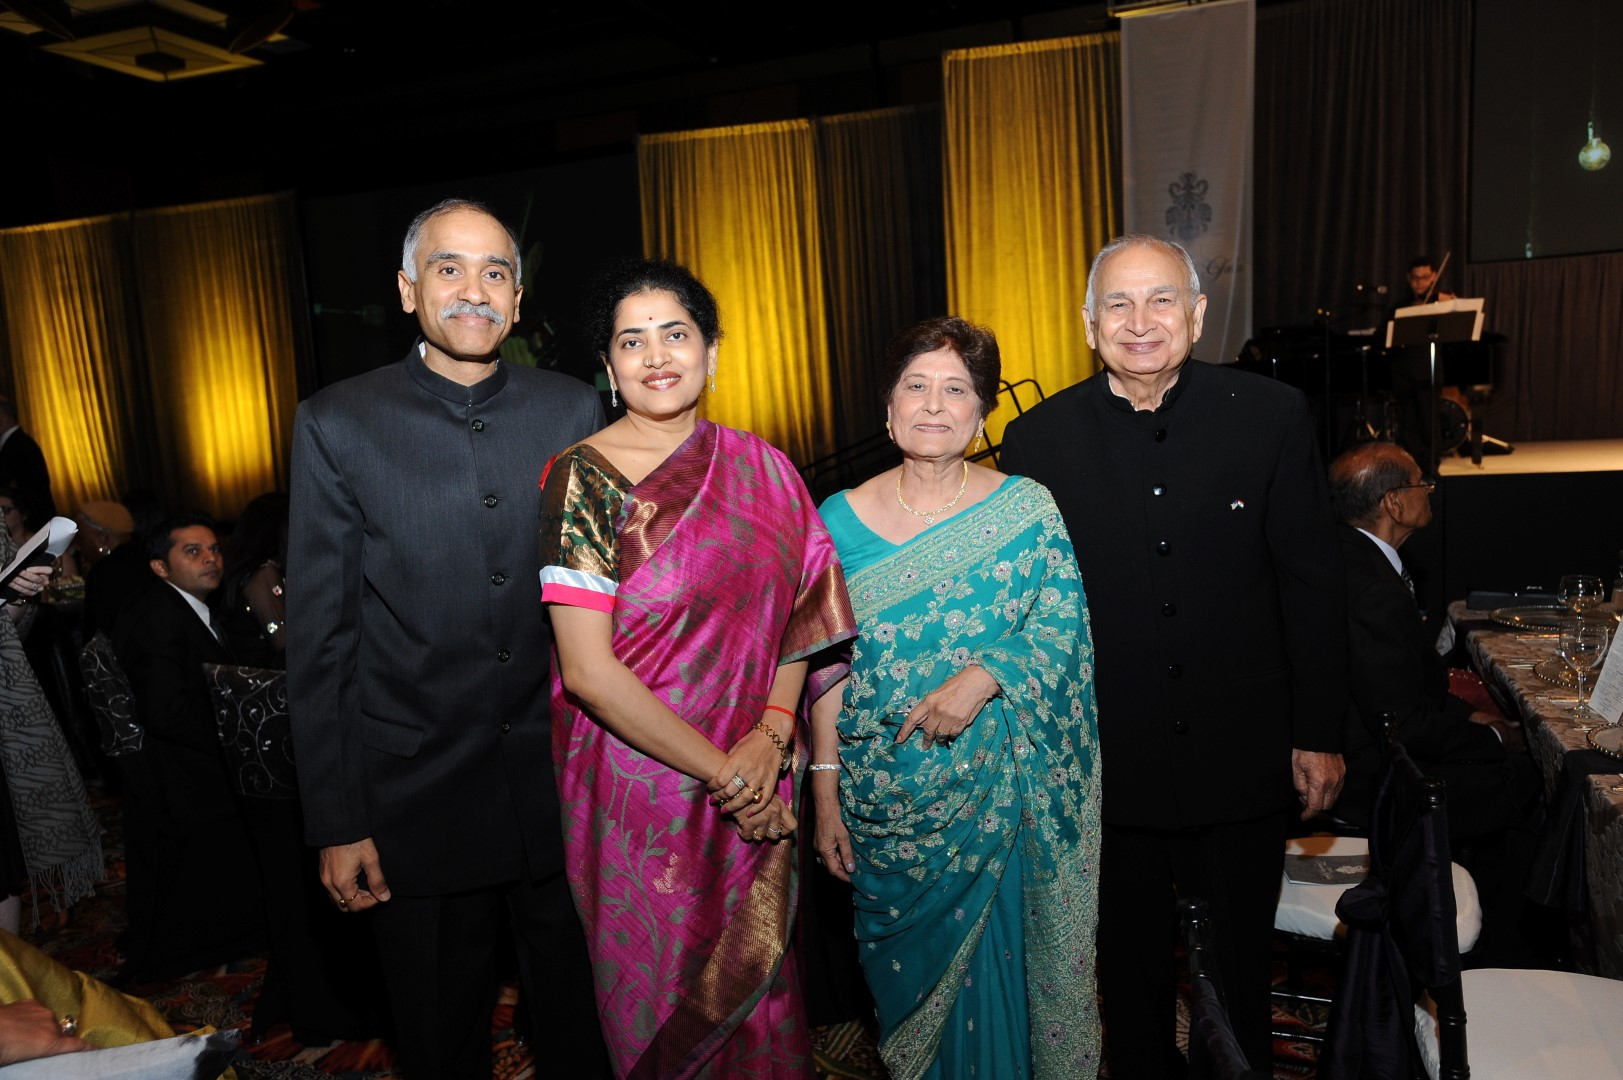 Consul General of India Parvathaneni Harish, Srimathi Nandita,  Sushma Mahajan and Devinder Mahajan